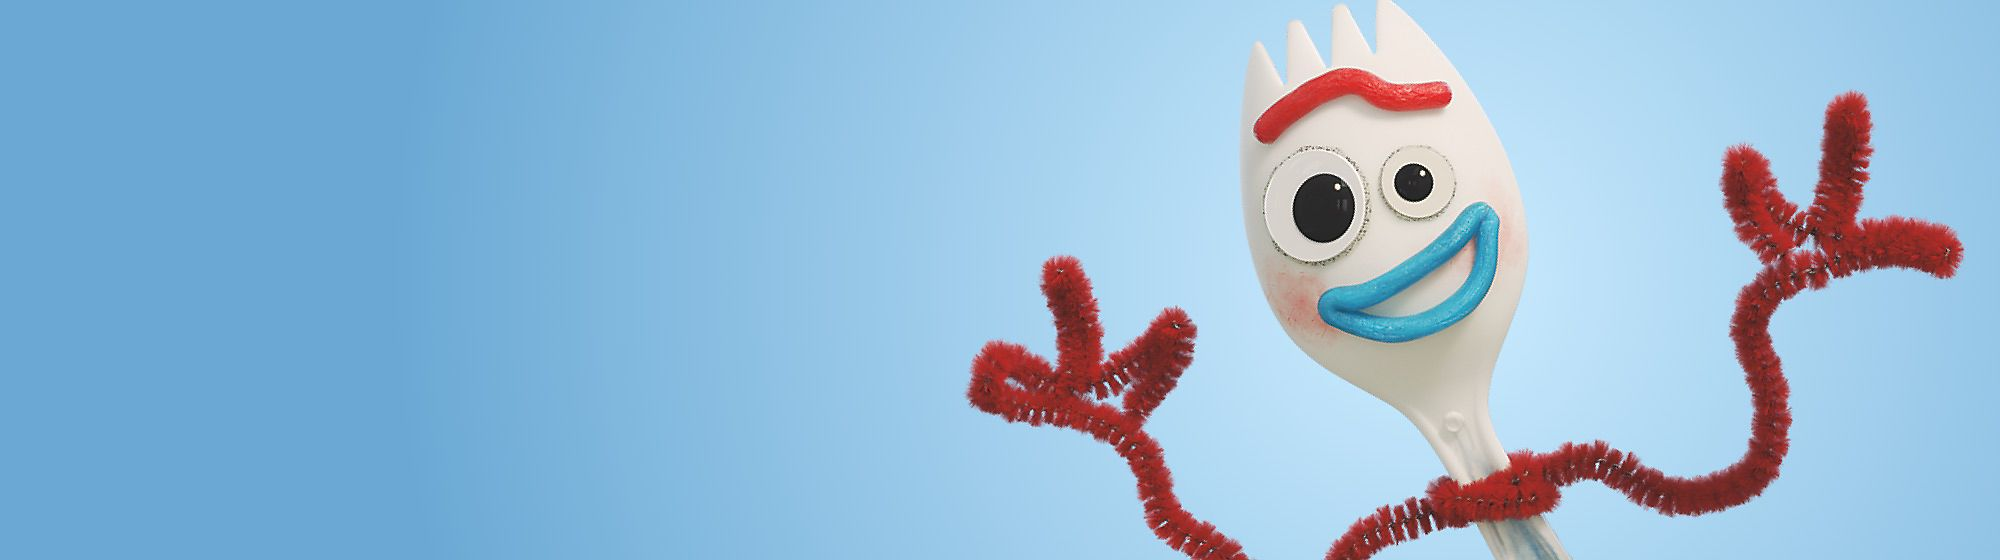 Forky Add a touch of quirky fun with our Forky toys, accessories, stationery and more